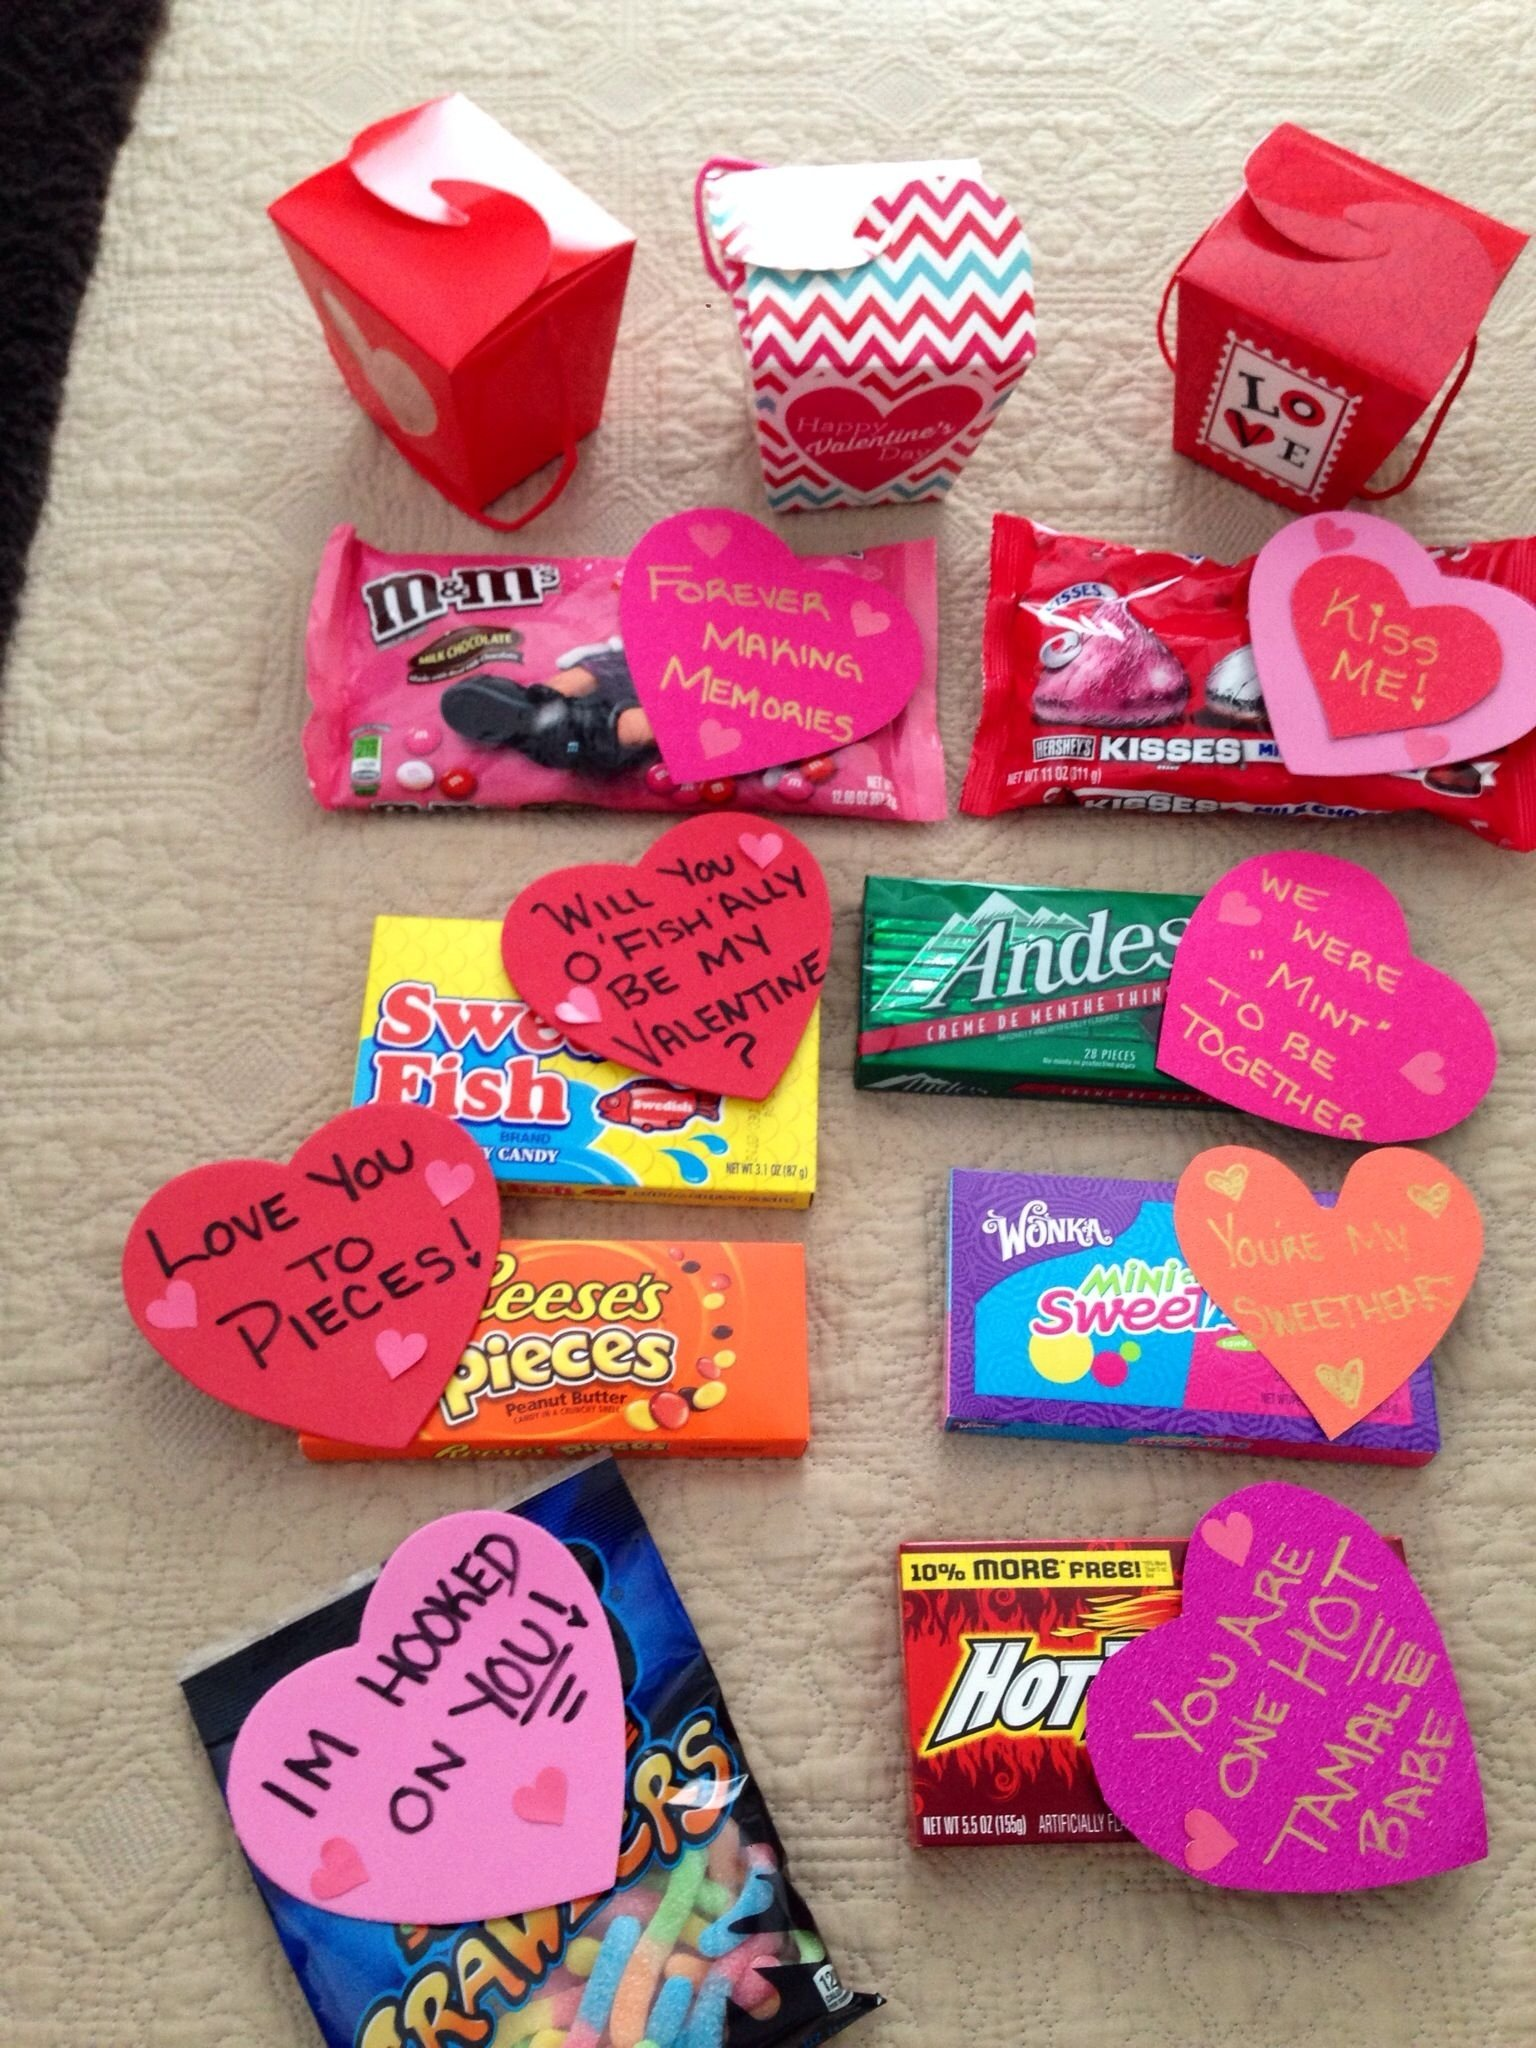 10 Awesome Cute Valentines Day Ideas For Girlfriend